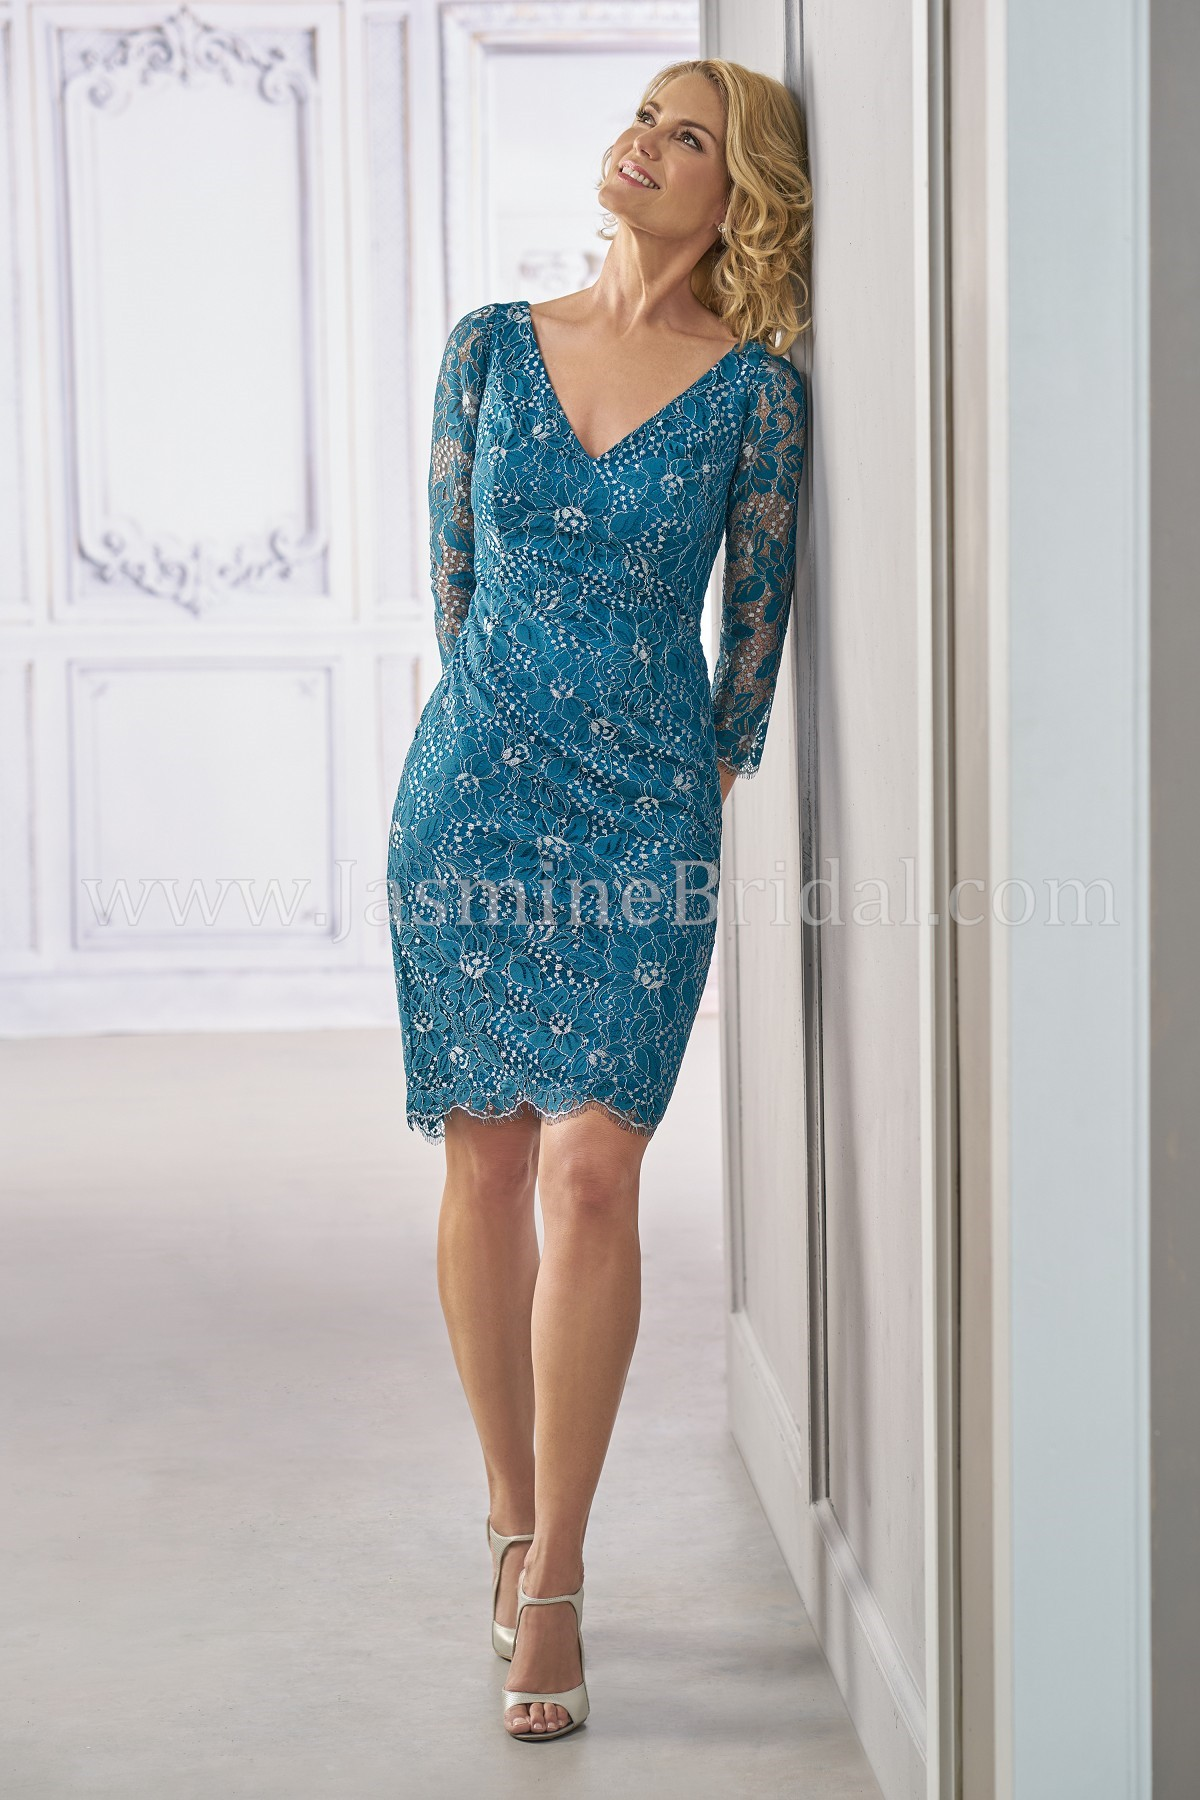 Beautiful Lace Mother Of The Bride Dresses Vignette - All Wedding ...